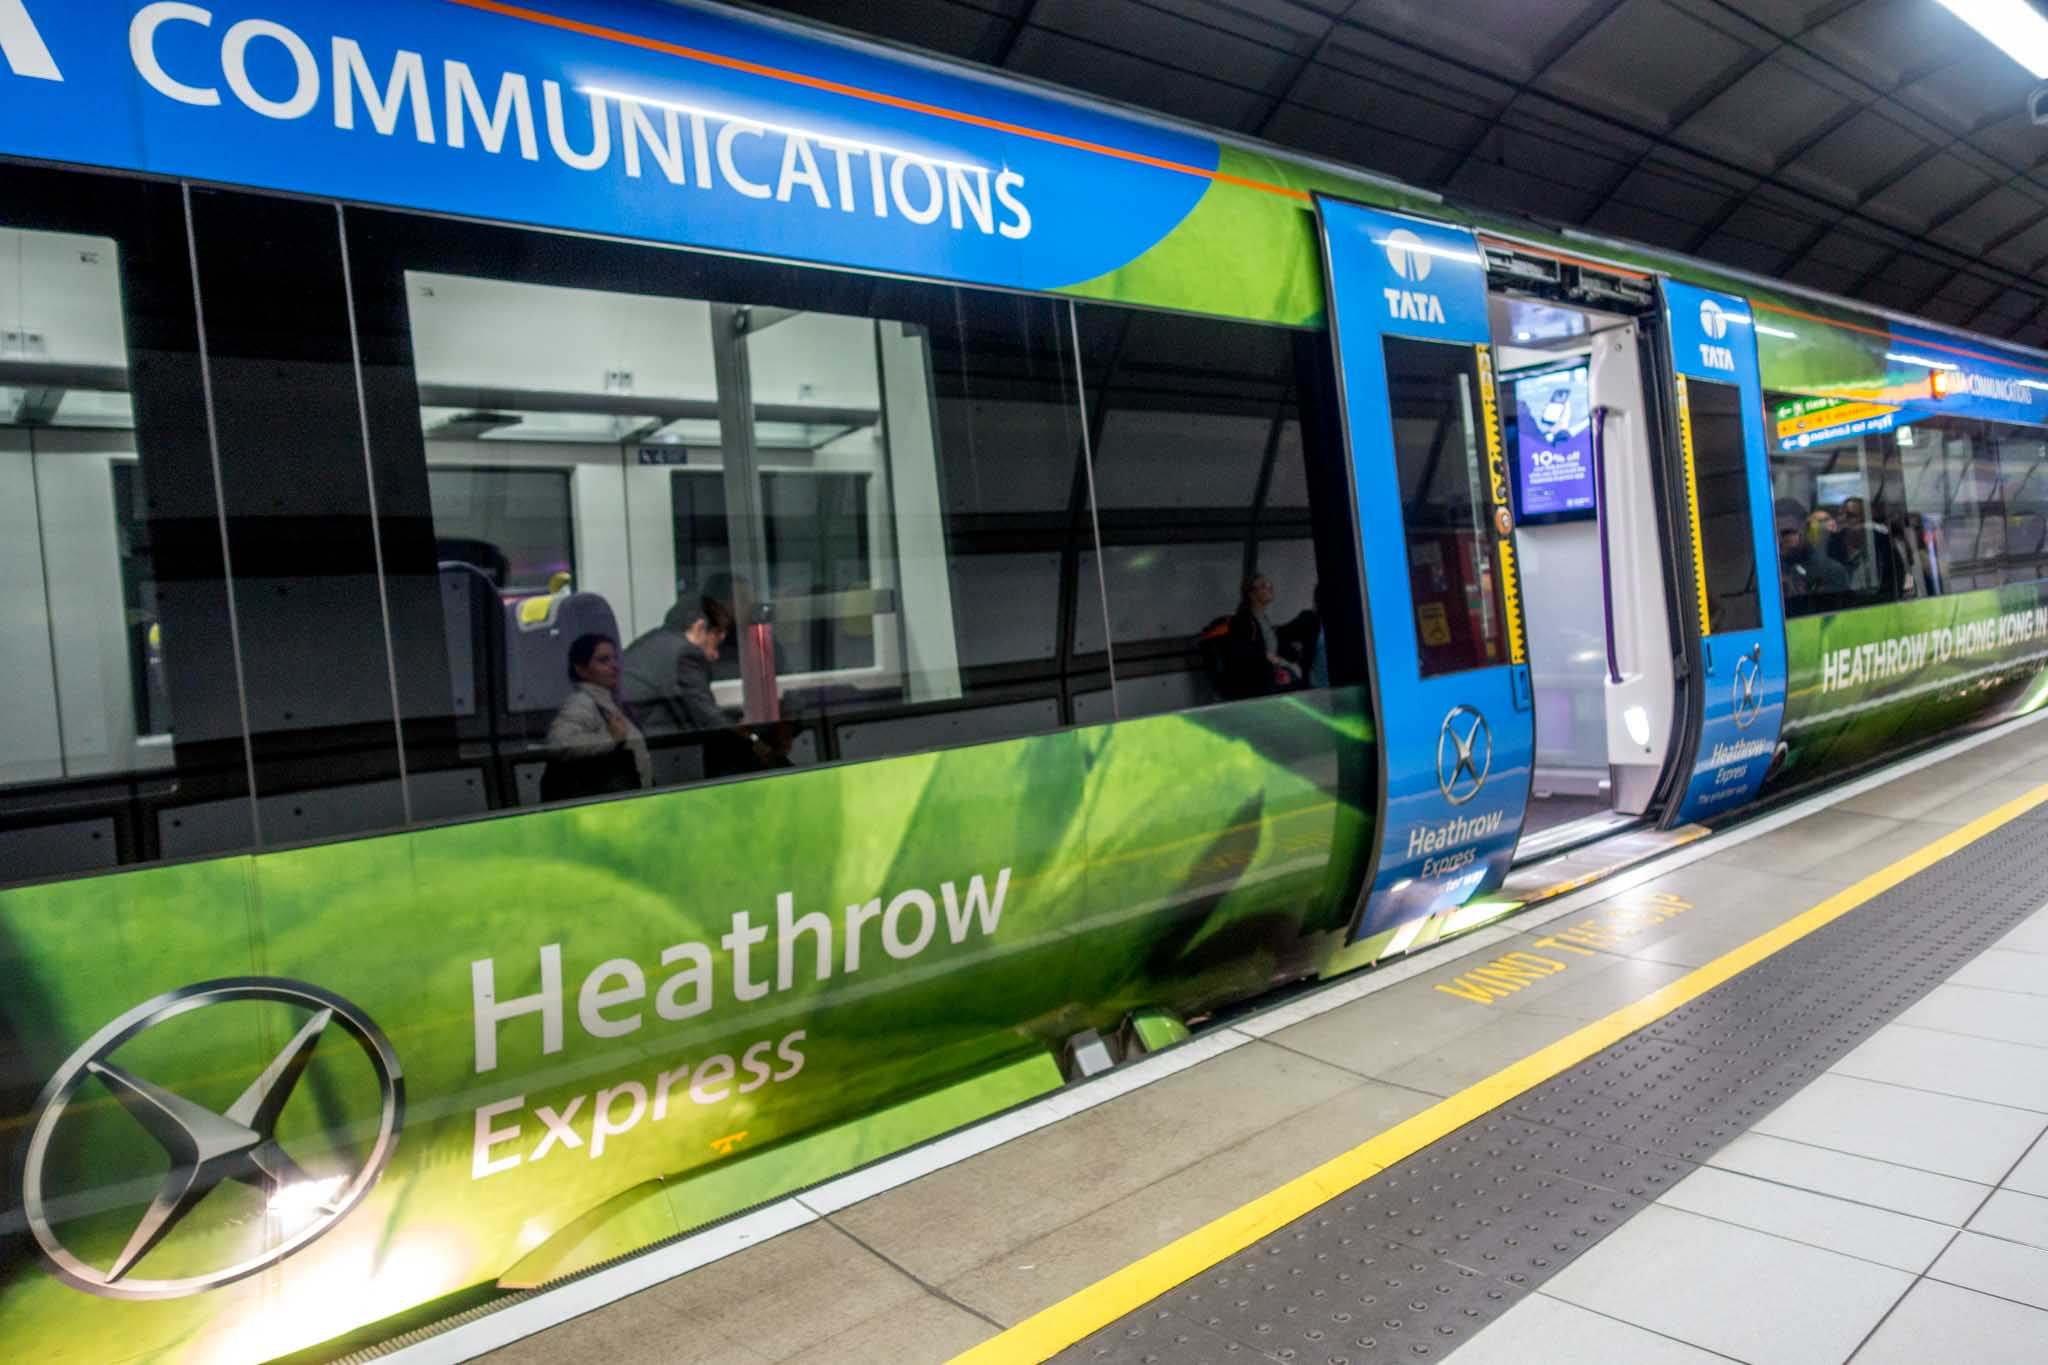 The London Heathrow Express train is the fastest way to get from London Heathrow to London.  The Heathrow express cost is expensive, but you can save significant money by buying discounted Heathrow Express tickets in advance.